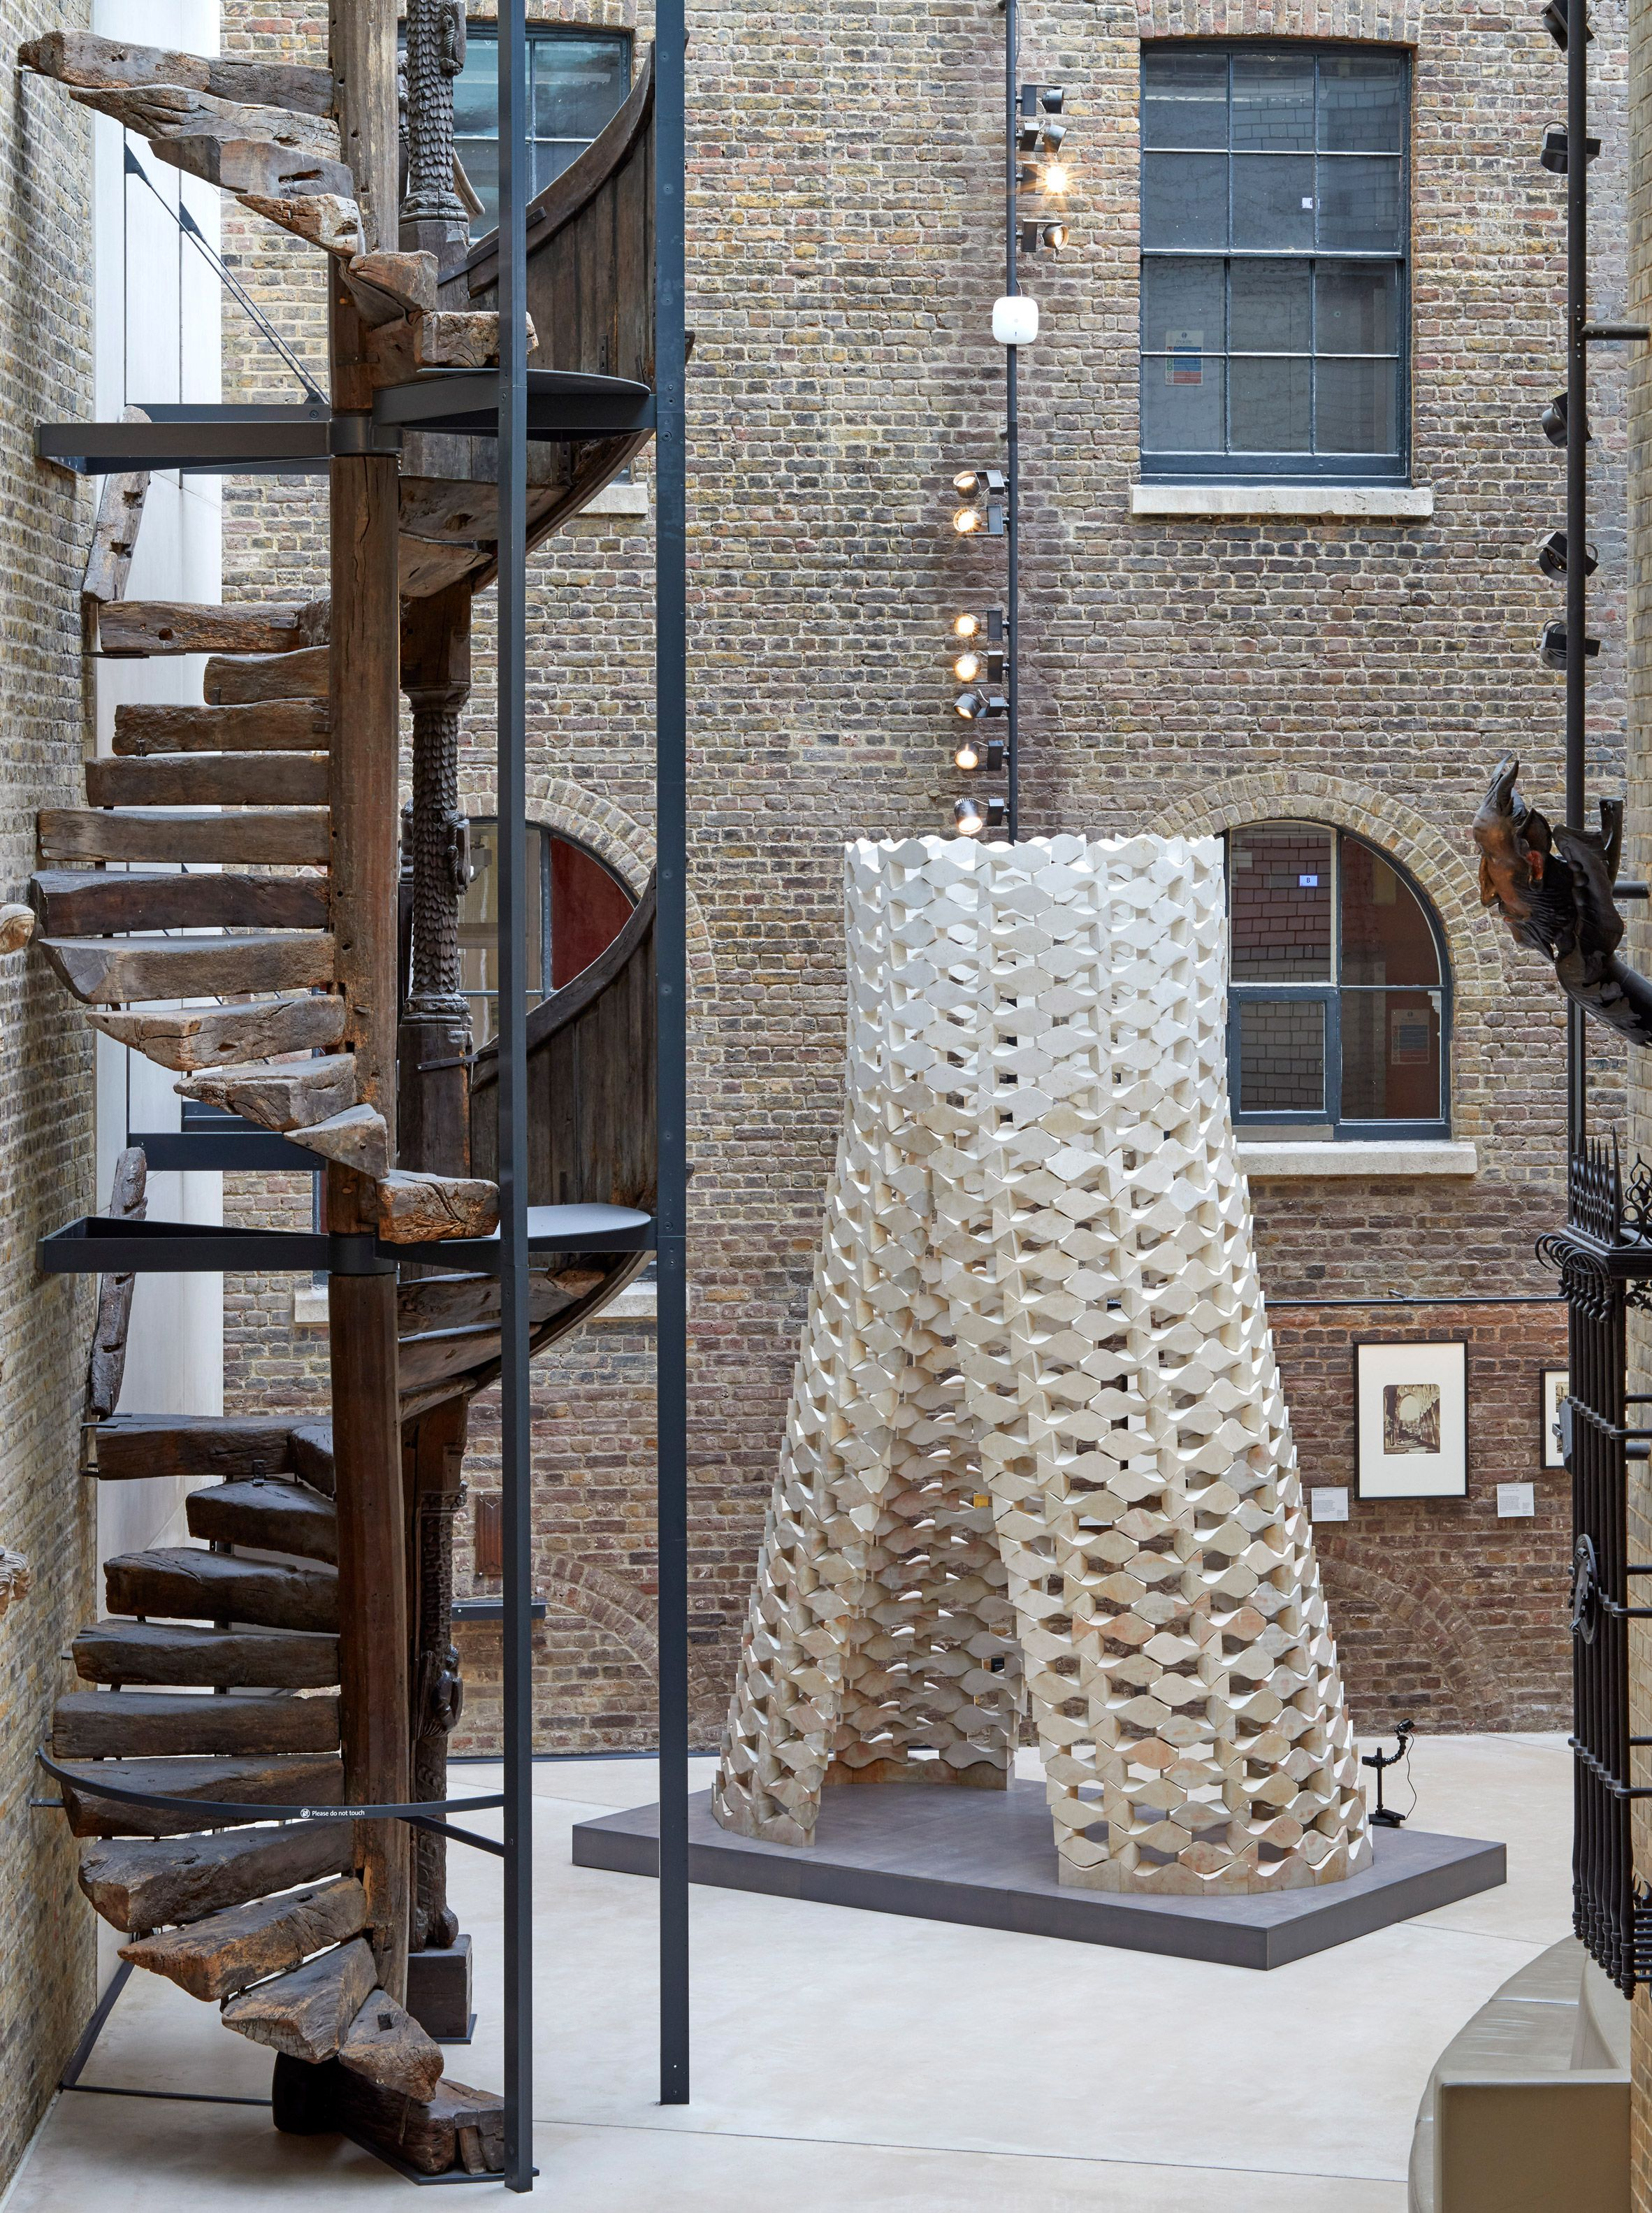 Robots cut the curvy blocks that make up this stone tower, which ...